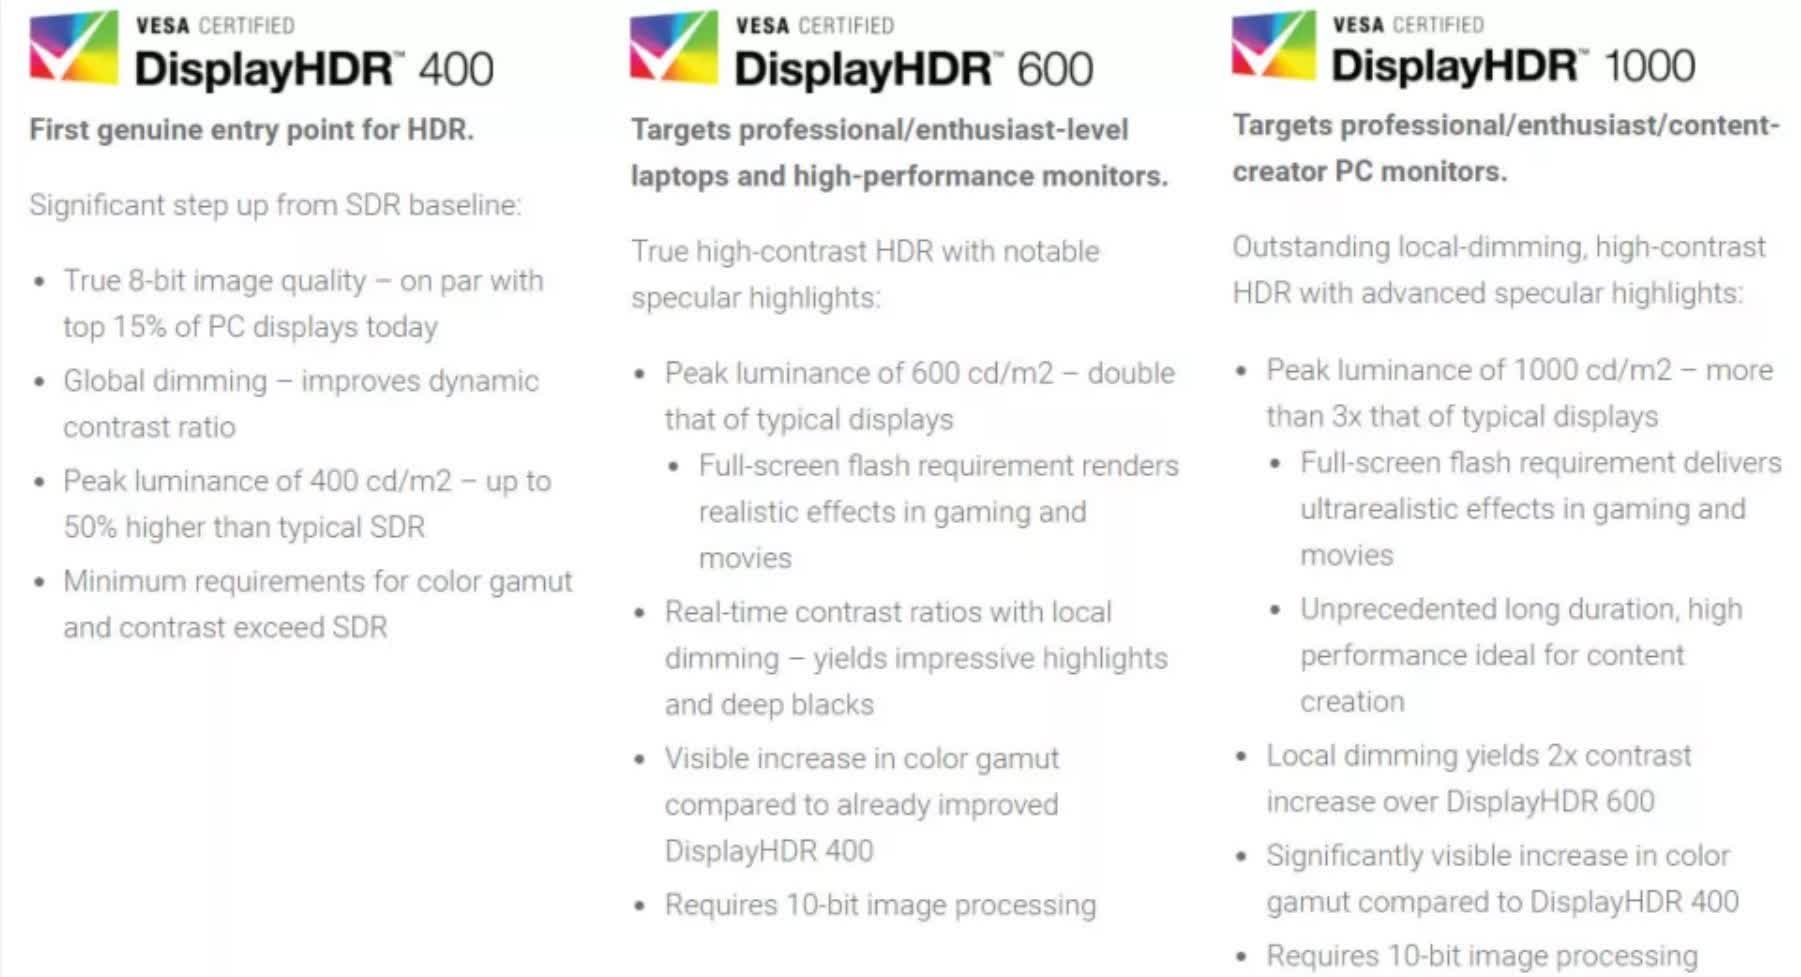 VESA says there's no such thing as DisplayHDR 2000 monitors